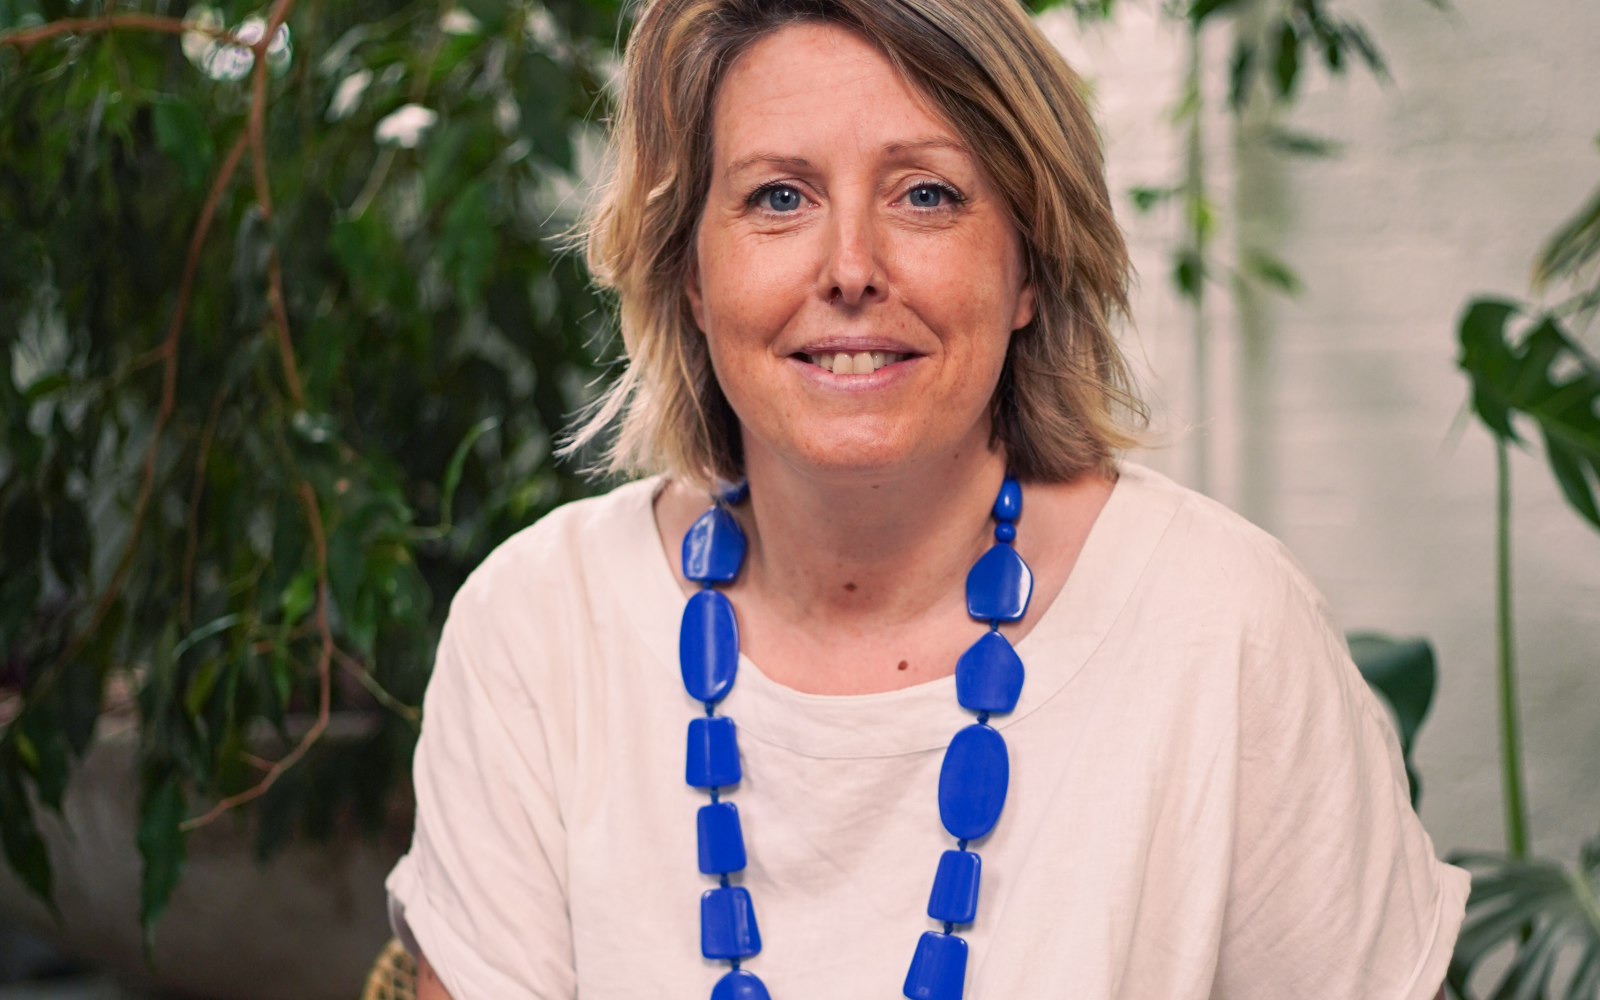 Baroness Bryony Worthington is the co-founder of Subak, having previously worked as a lead author of the UK's Climate Change Act. Image: Subak.